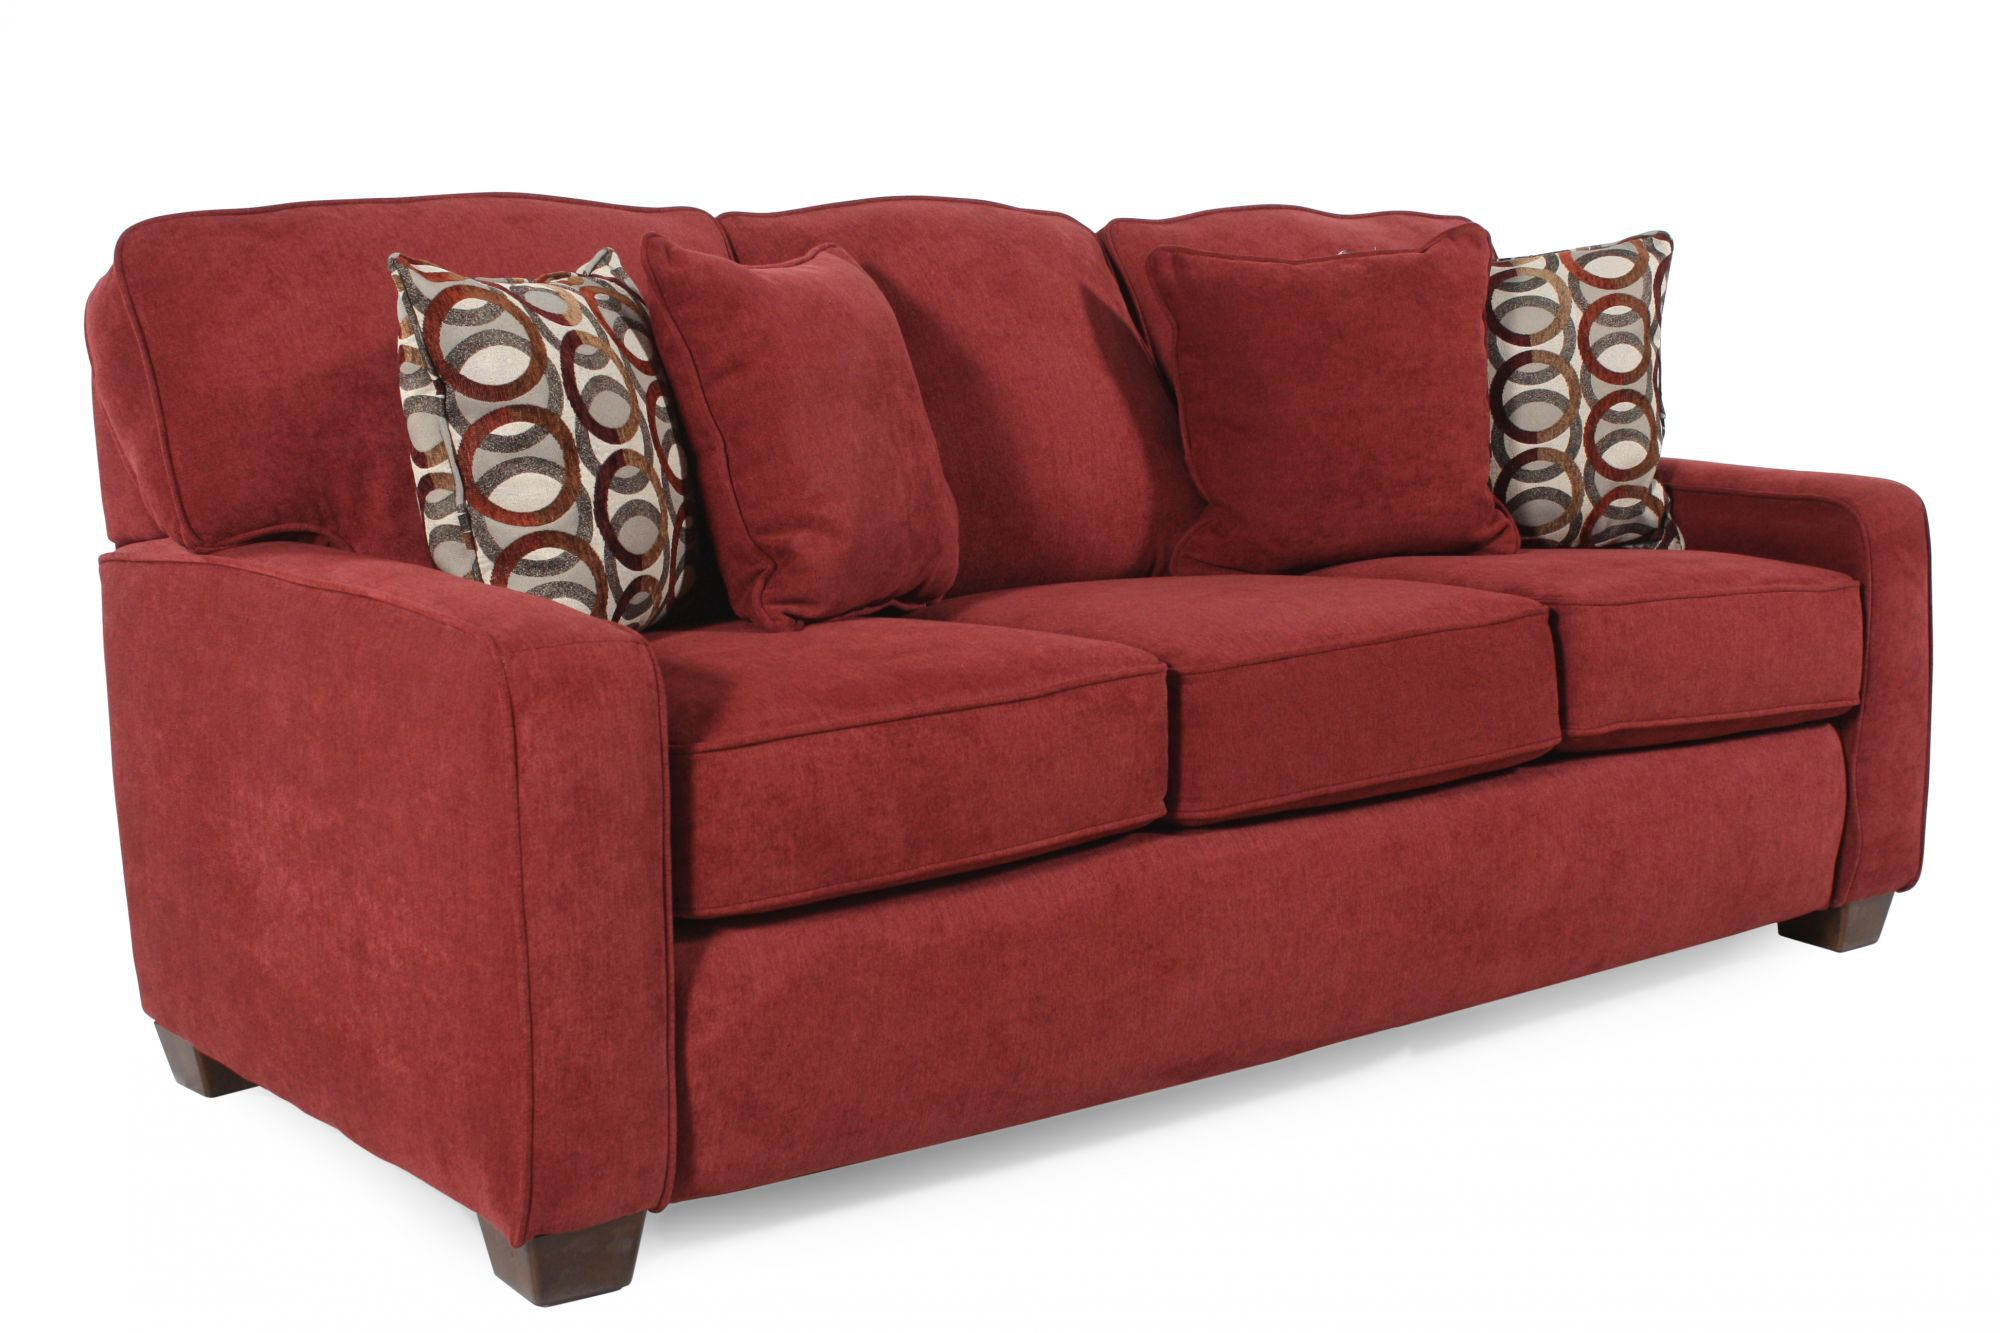 lane sleeper sofa queen ralph lauren leather stanmore i rest casual 82 quot in red berry mathis